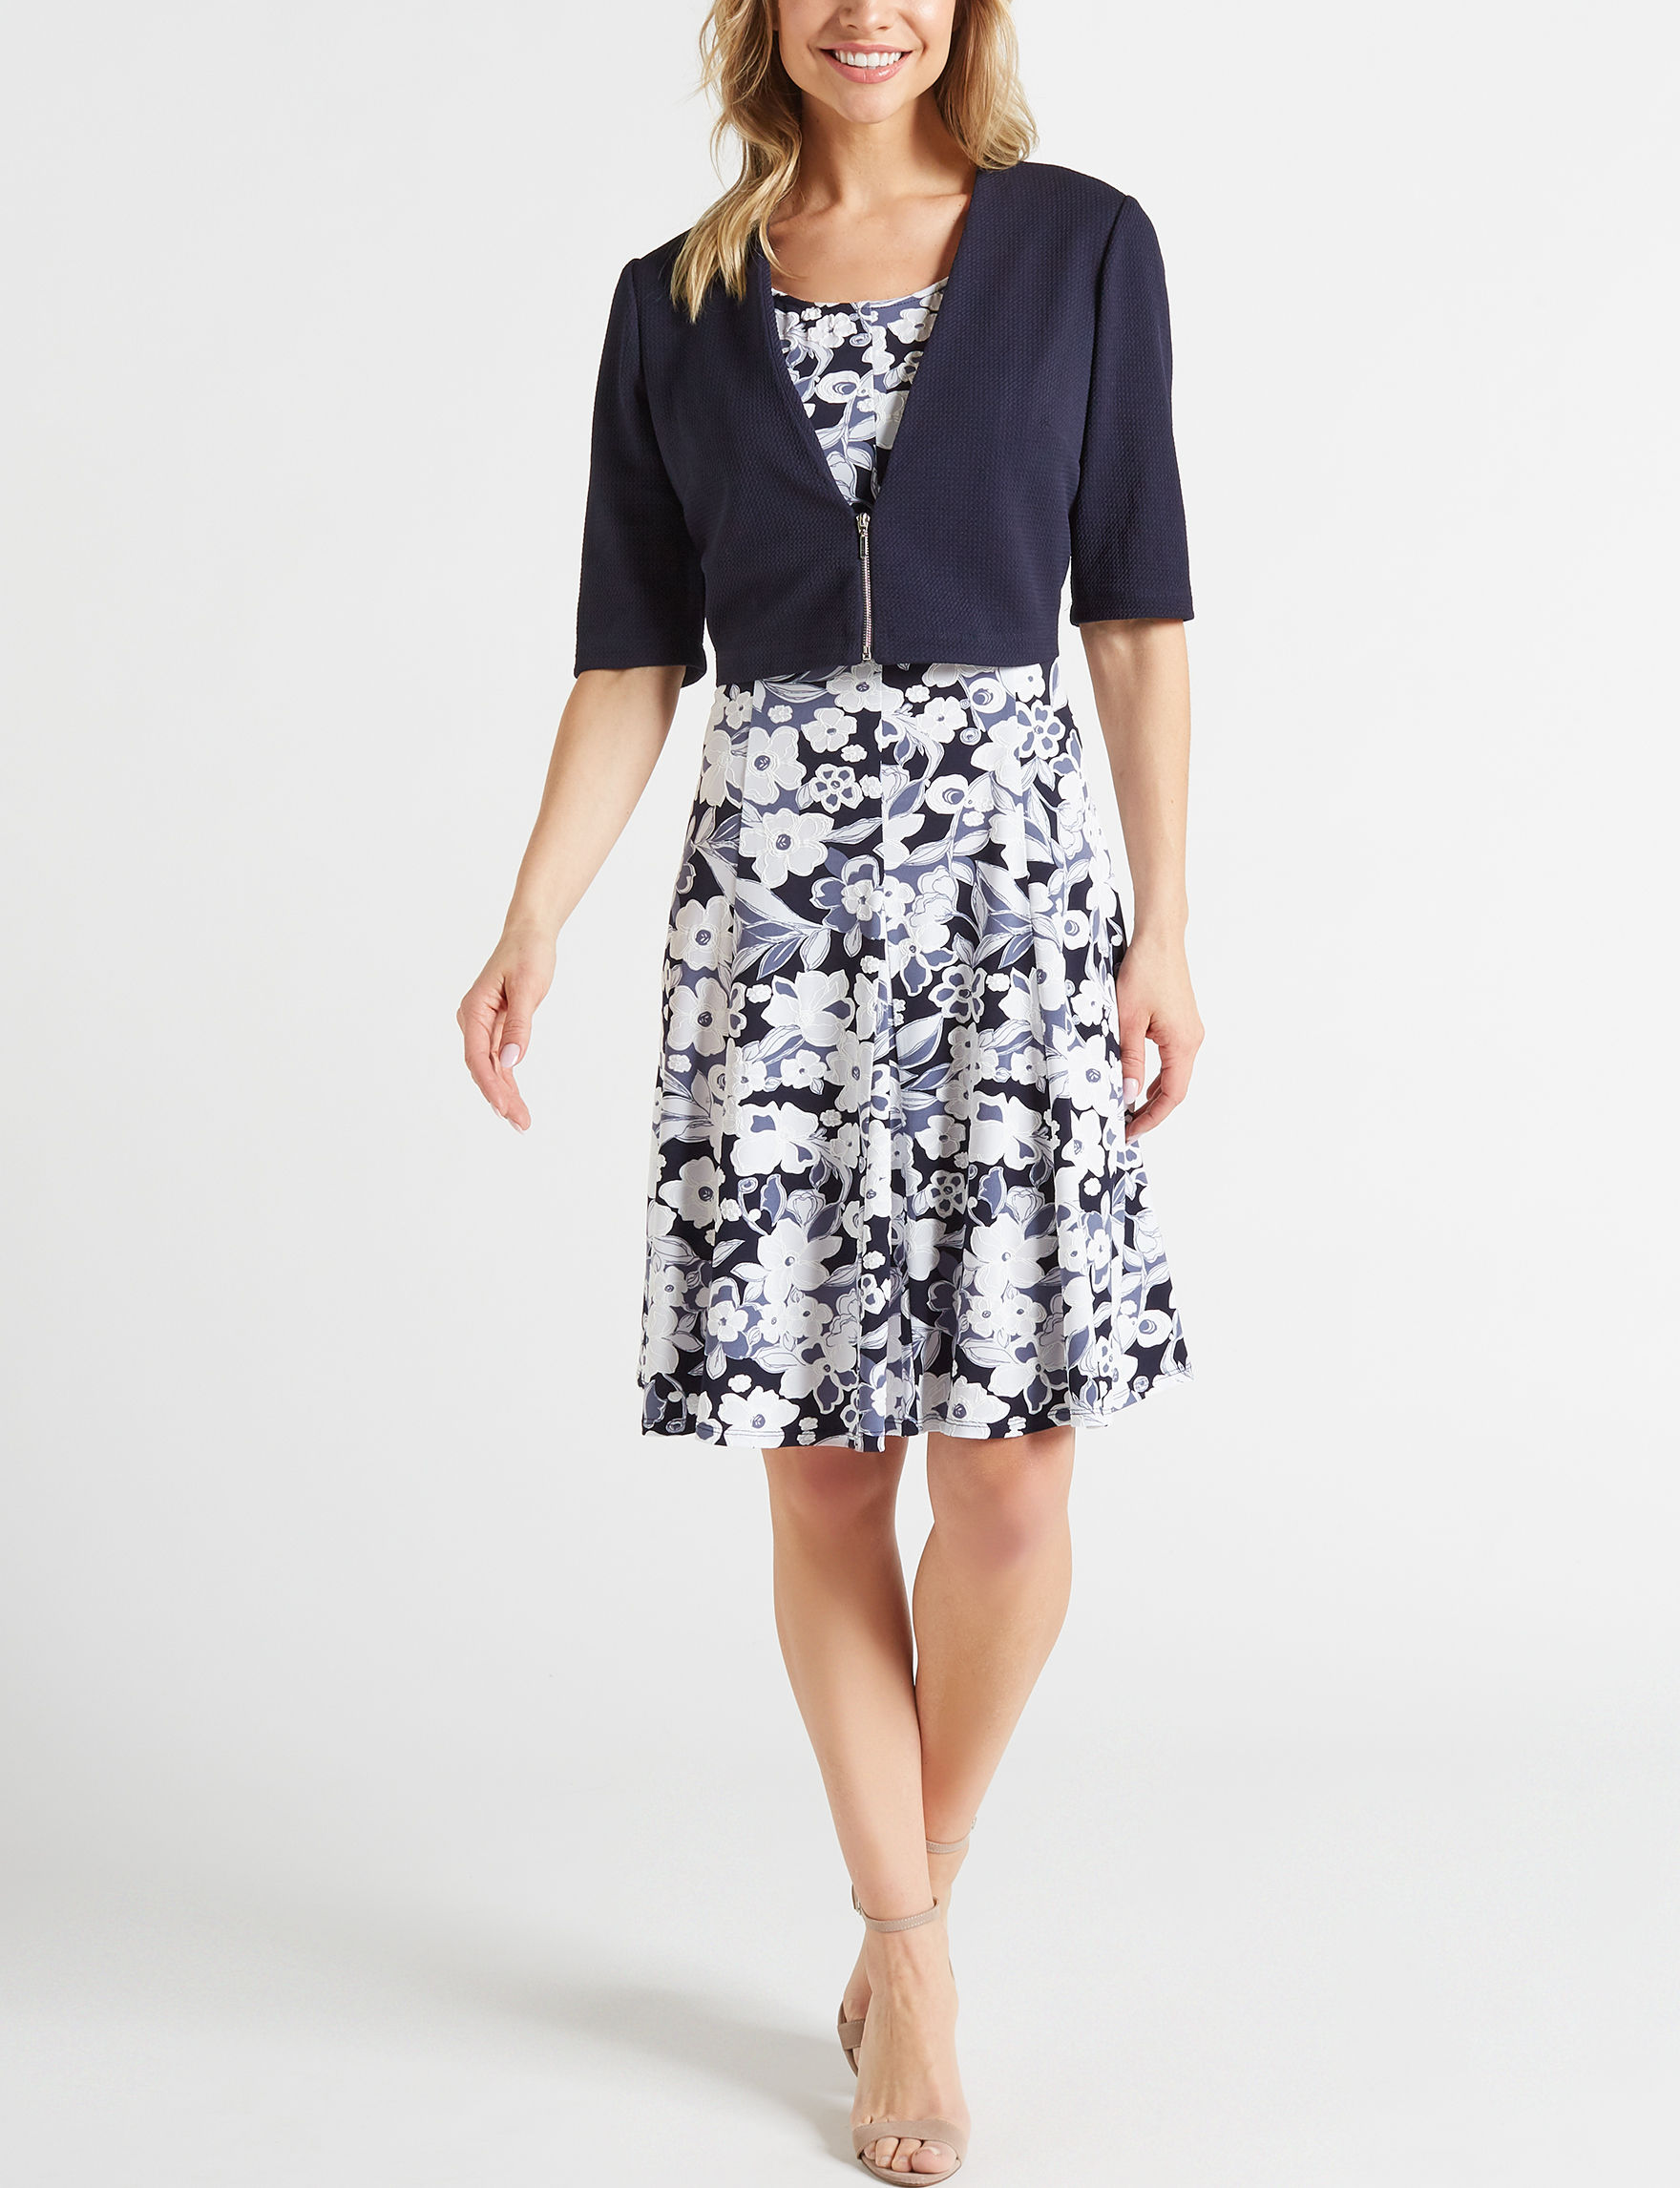 Perceptions Navy / White Everyday & Casual Jacket Dresses